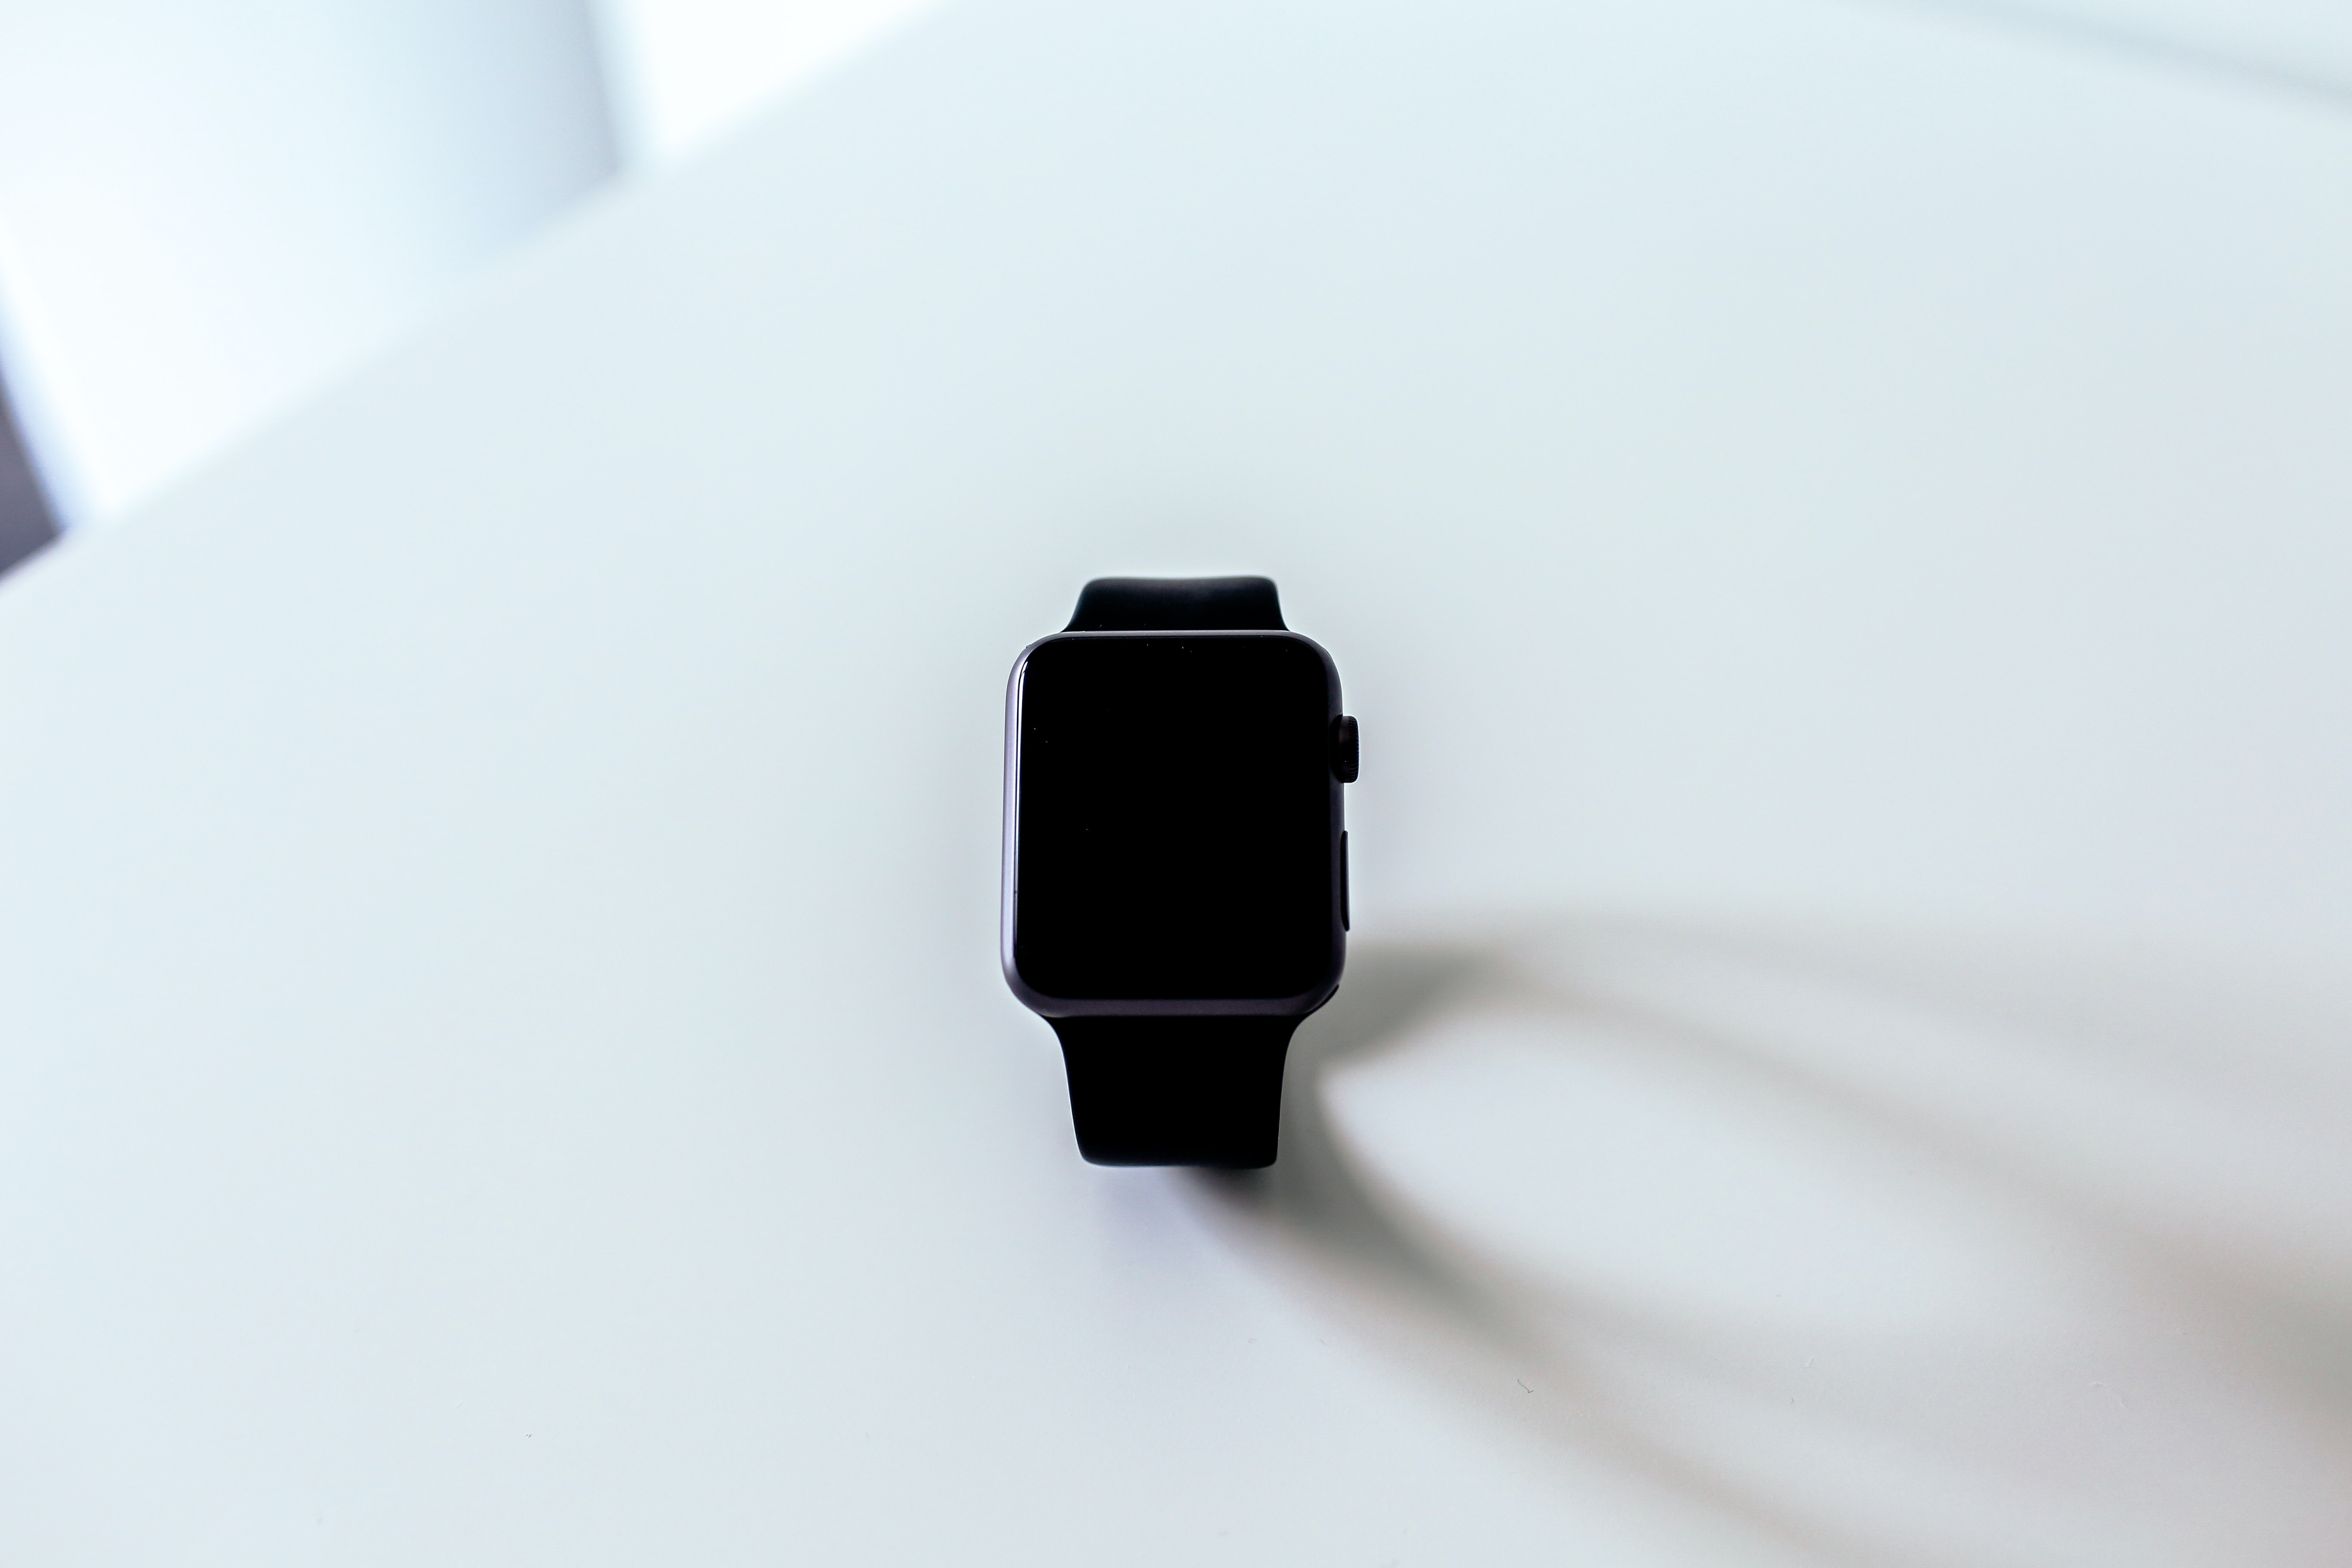 Apple Watch on white surface